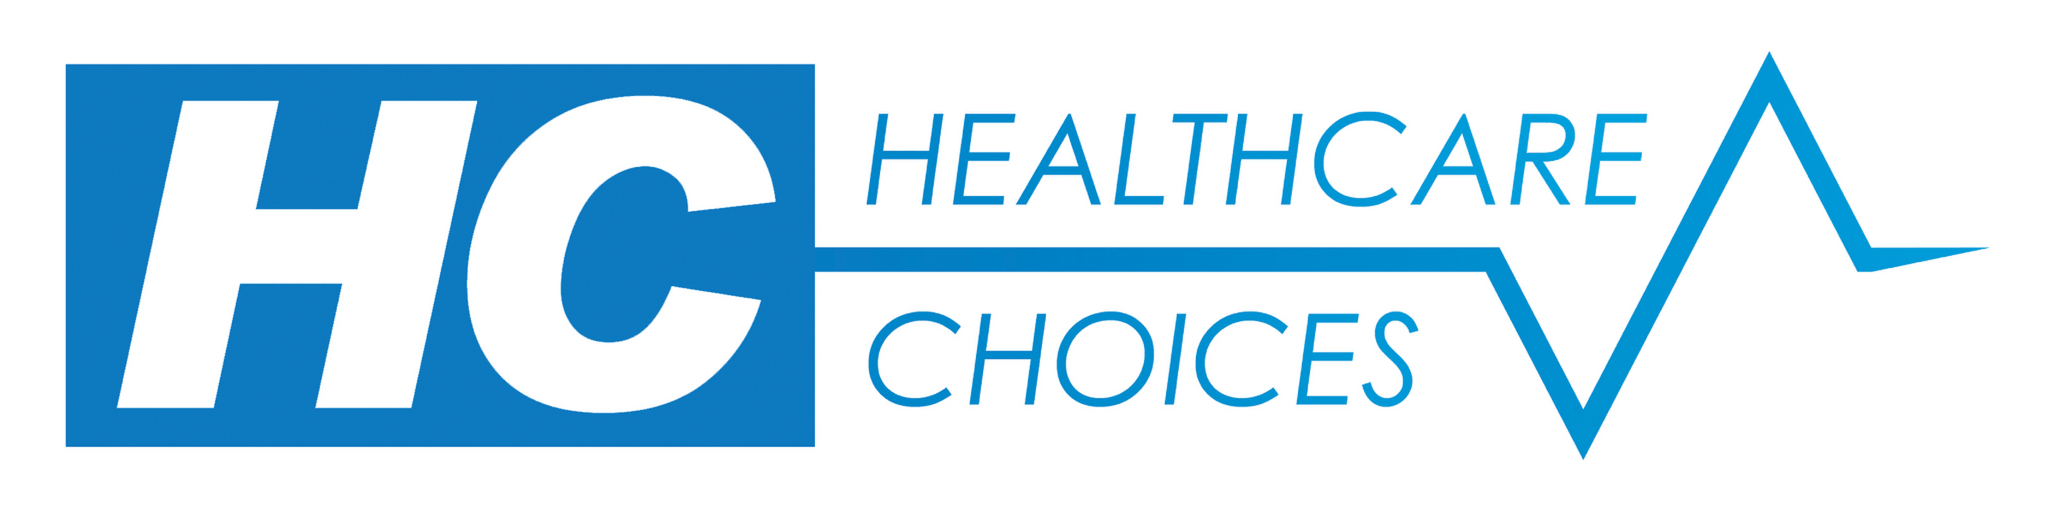 Healthcare-Choices-jpg